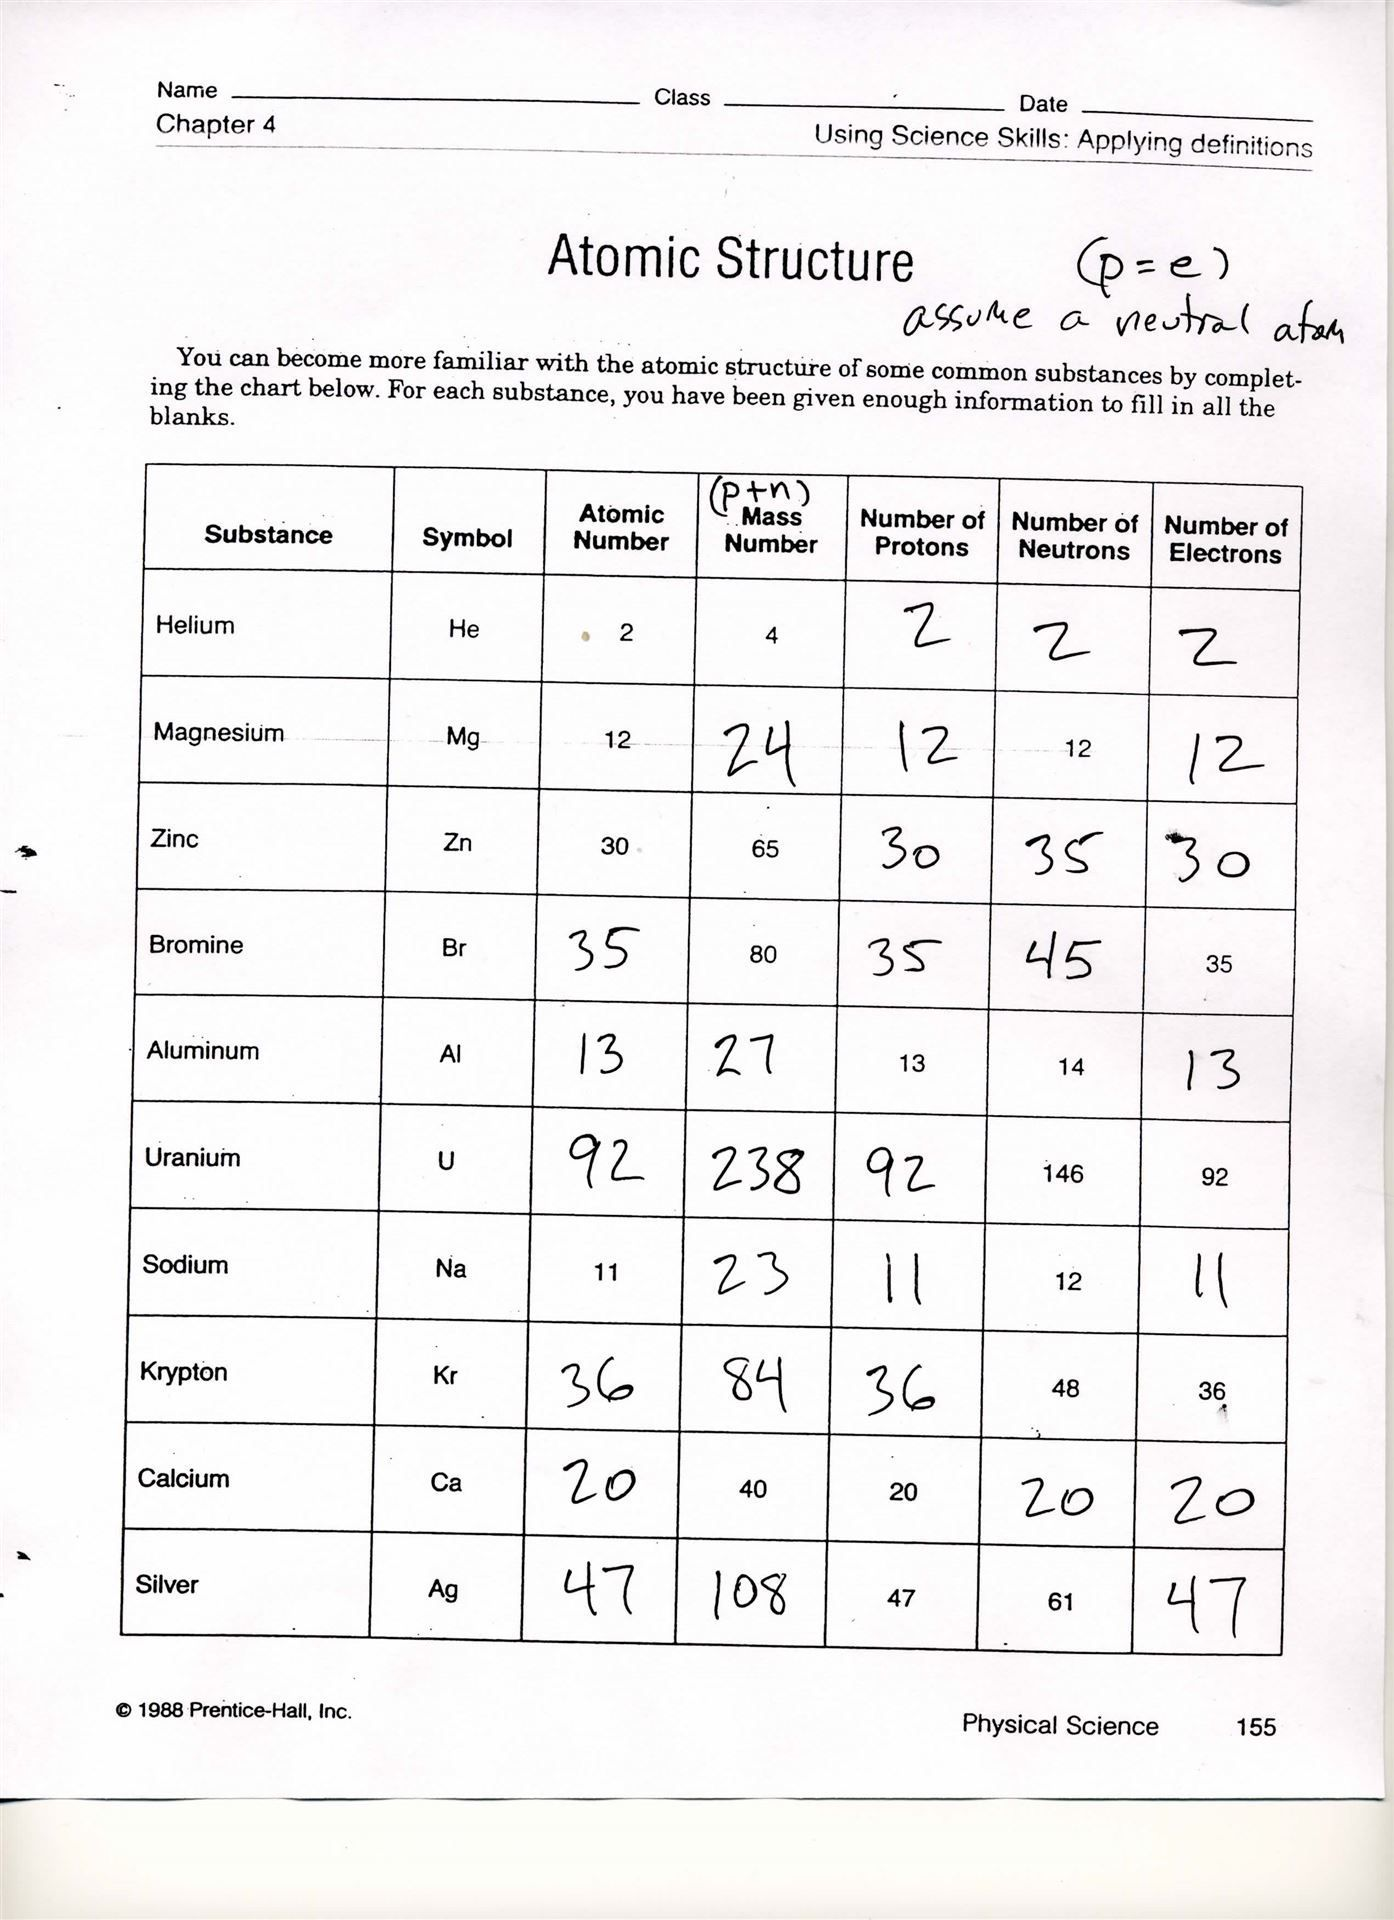 Free chemistry worksheets on atomic structure yahoo search results free chemistry worksheets on atomic structure yahoo search results yahoo image search results urtaz Images